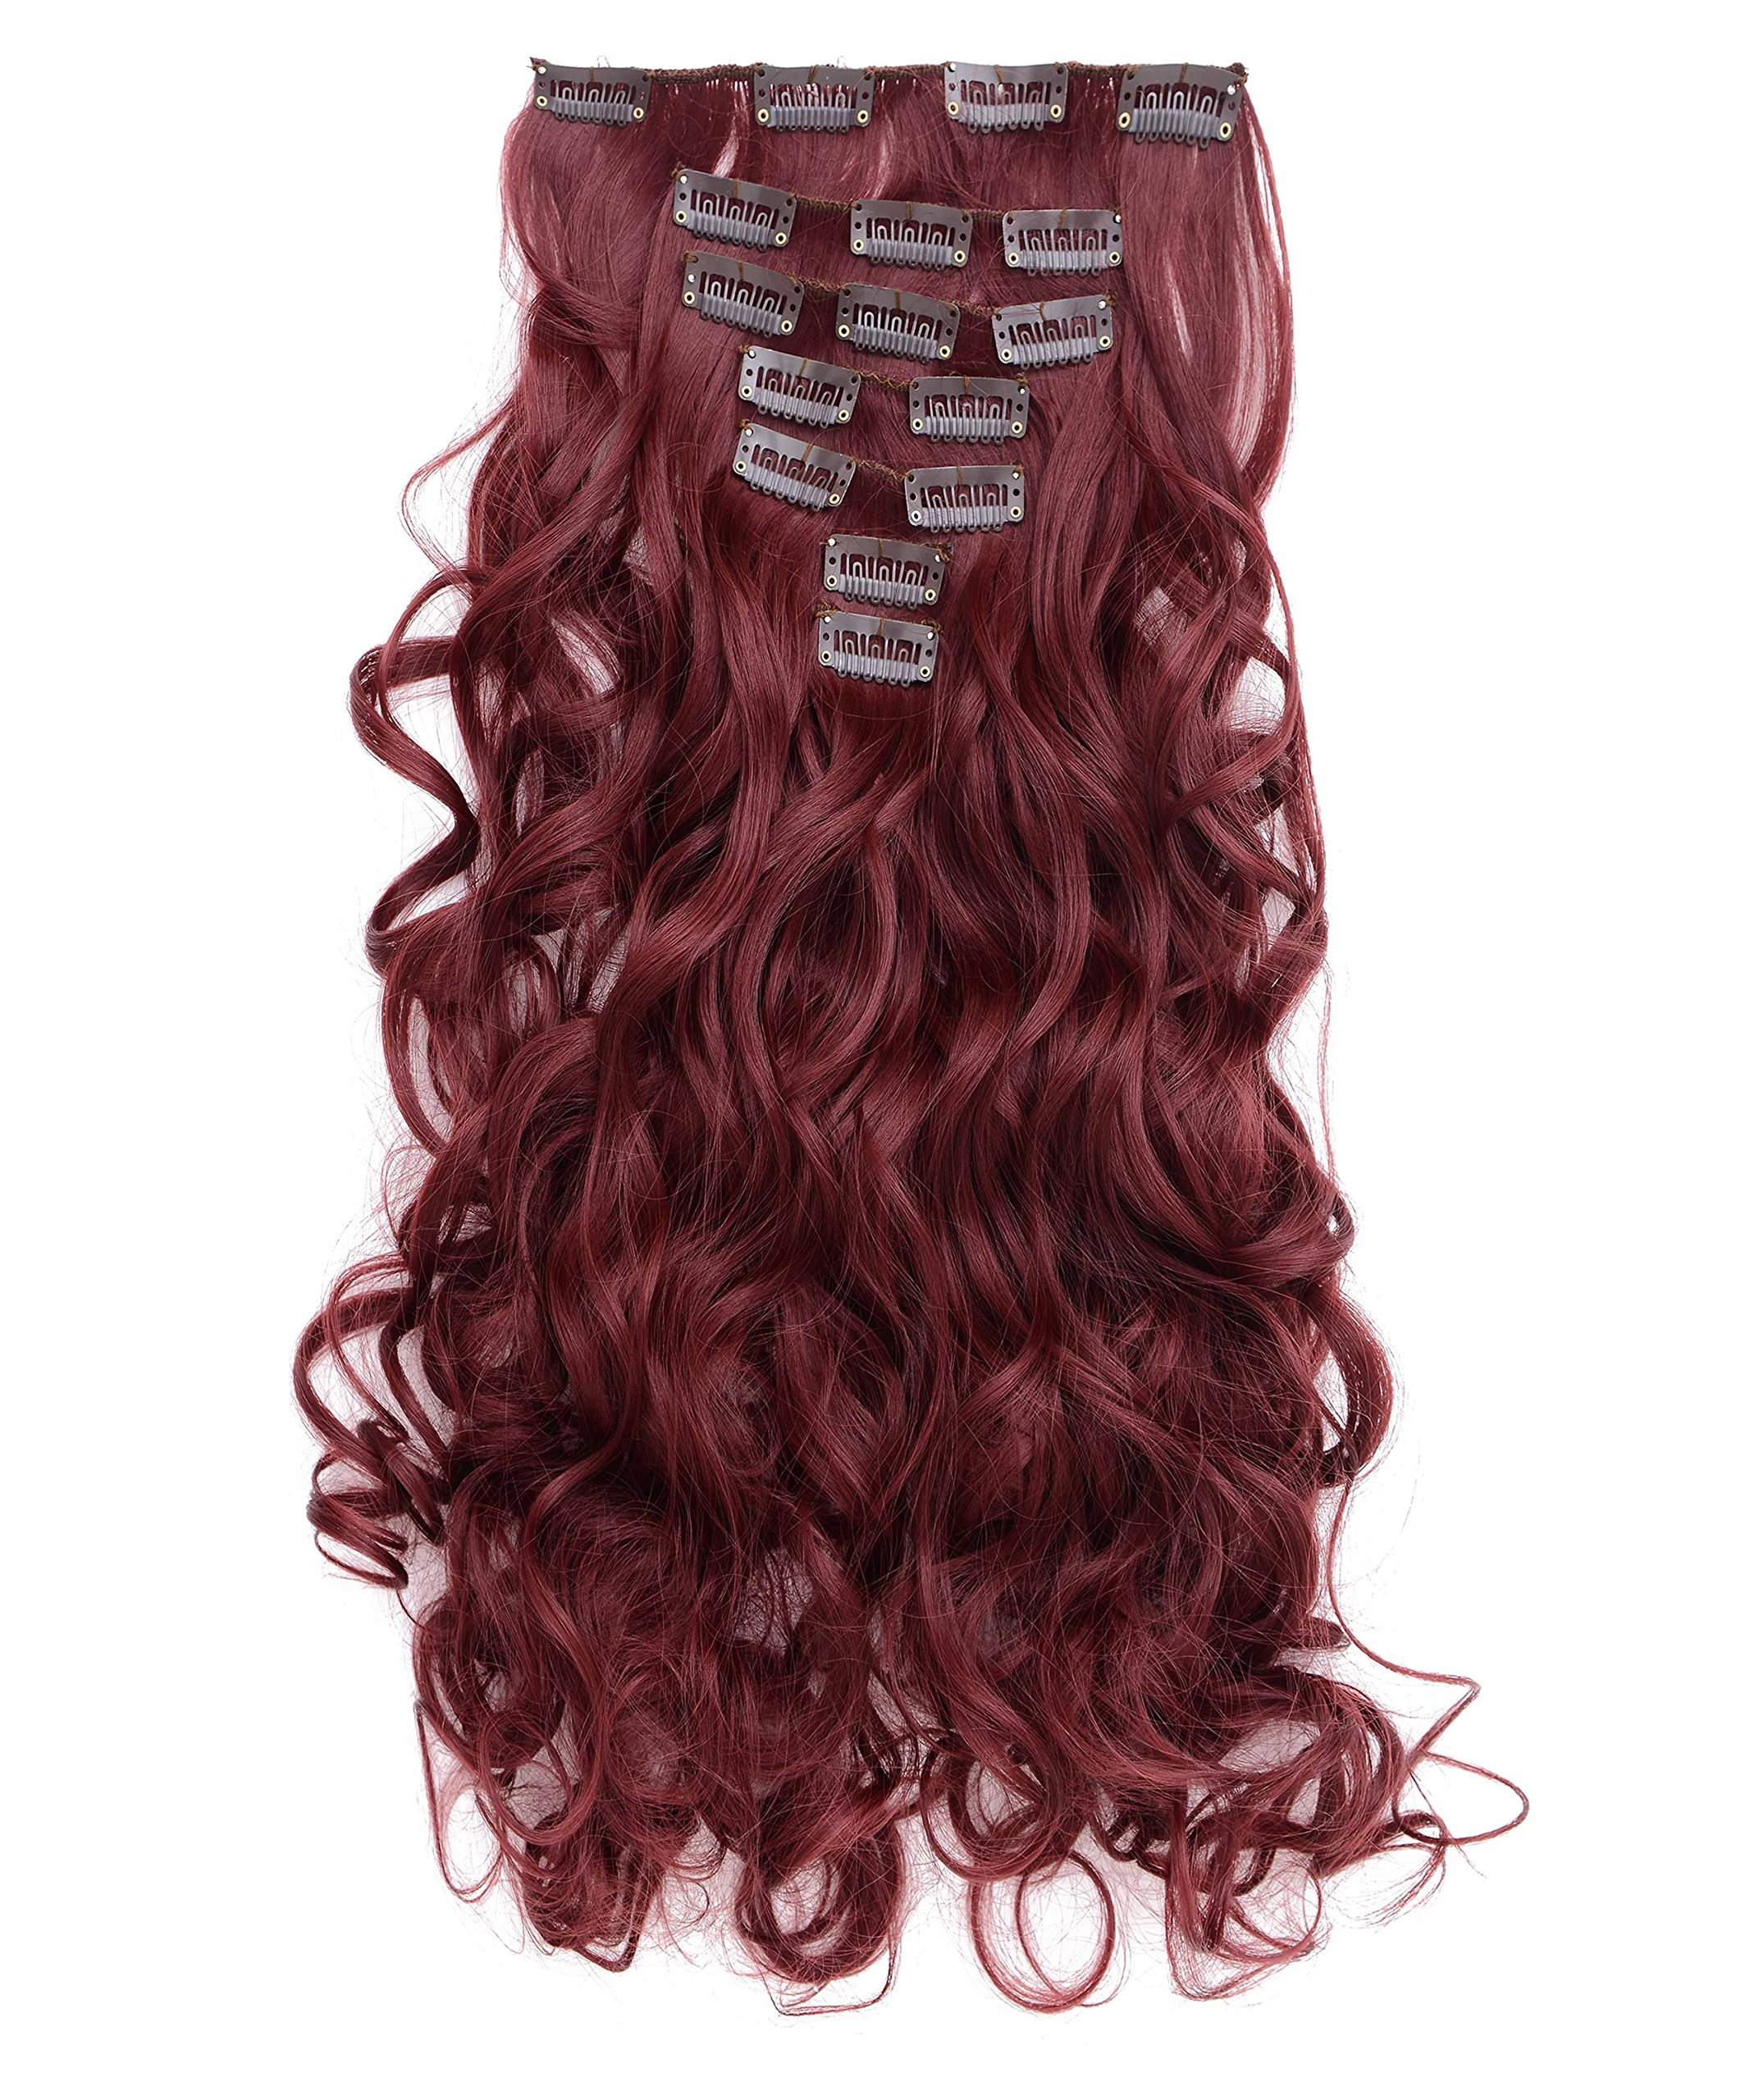 Amazon Reecho 20 1 Pack 34 Full Head Curly Wave Clips In On